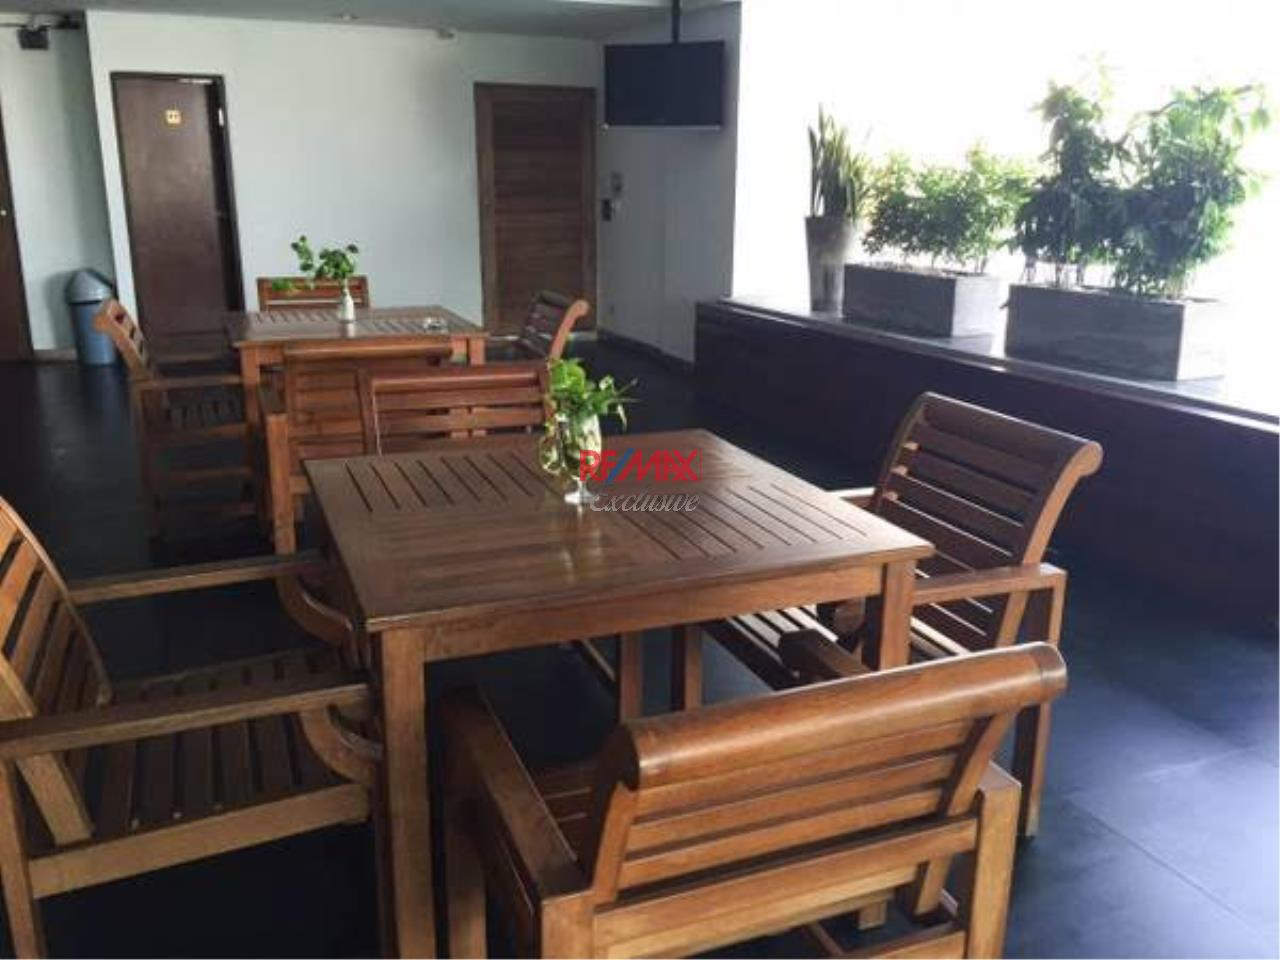 RE/MAX Exclusive Agency's Baan Saran 1 Bedroom Big Size for sale Good Price 4200000 THB 20